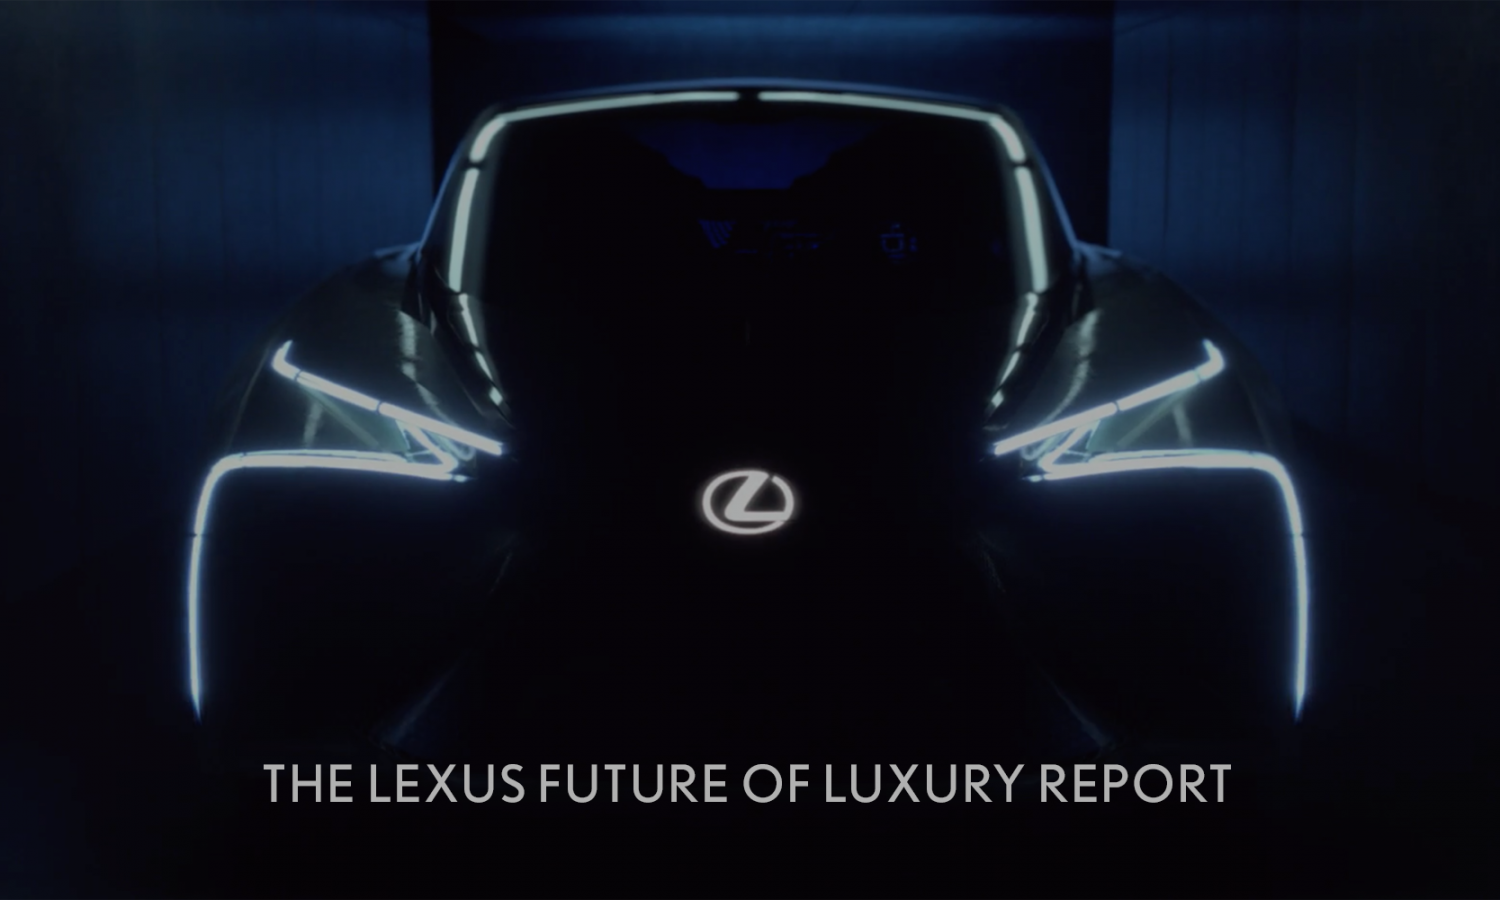 Lexus Releases Future of Luxury Report for the New Decade